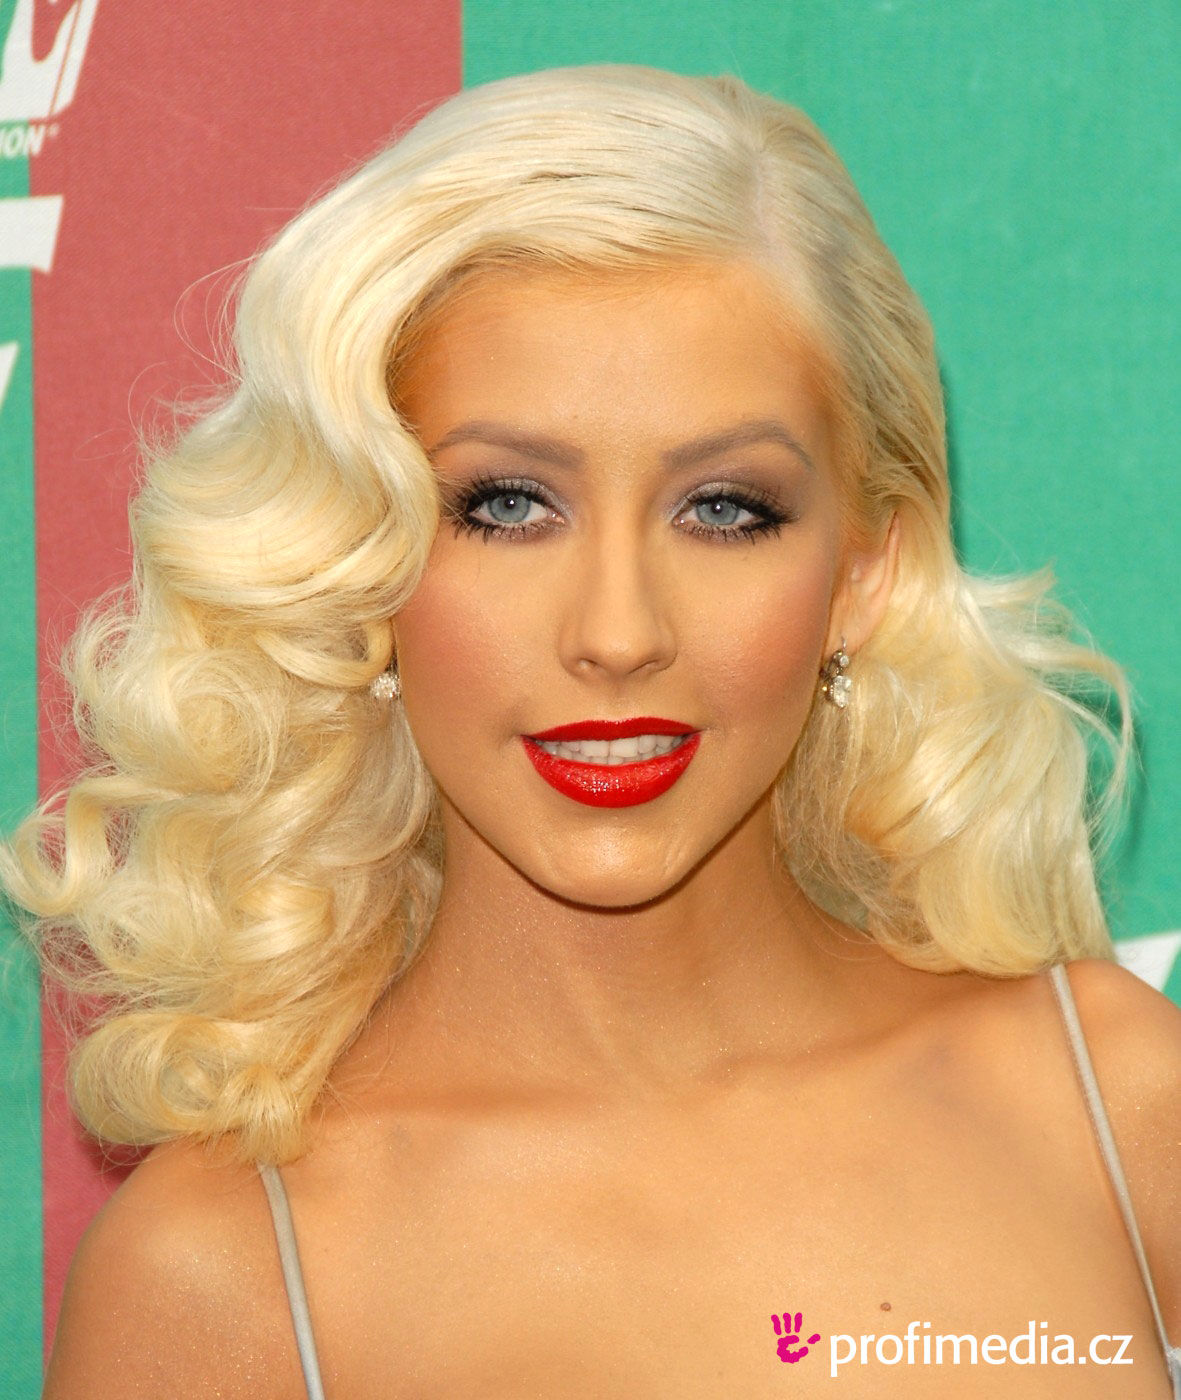 You Can Try This Christina Aguilera S Hairstyle With Your Own Photo Upload At Easyhairstyler